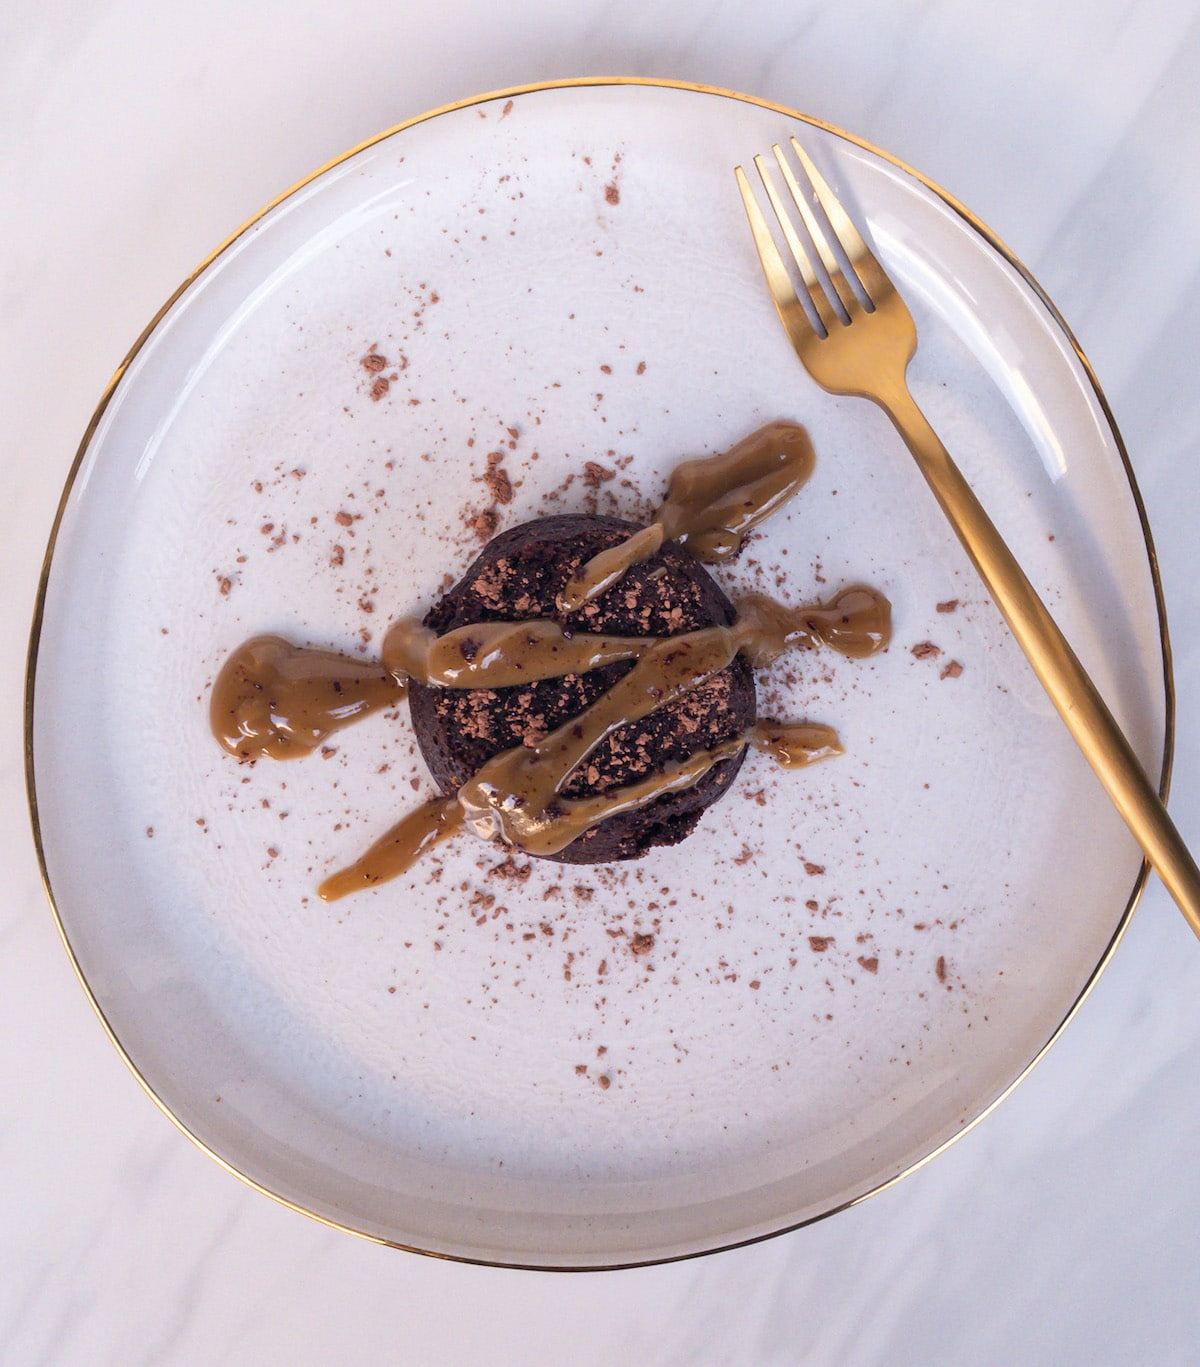 chocolate lava cake on white plate with golden drizzle and fork